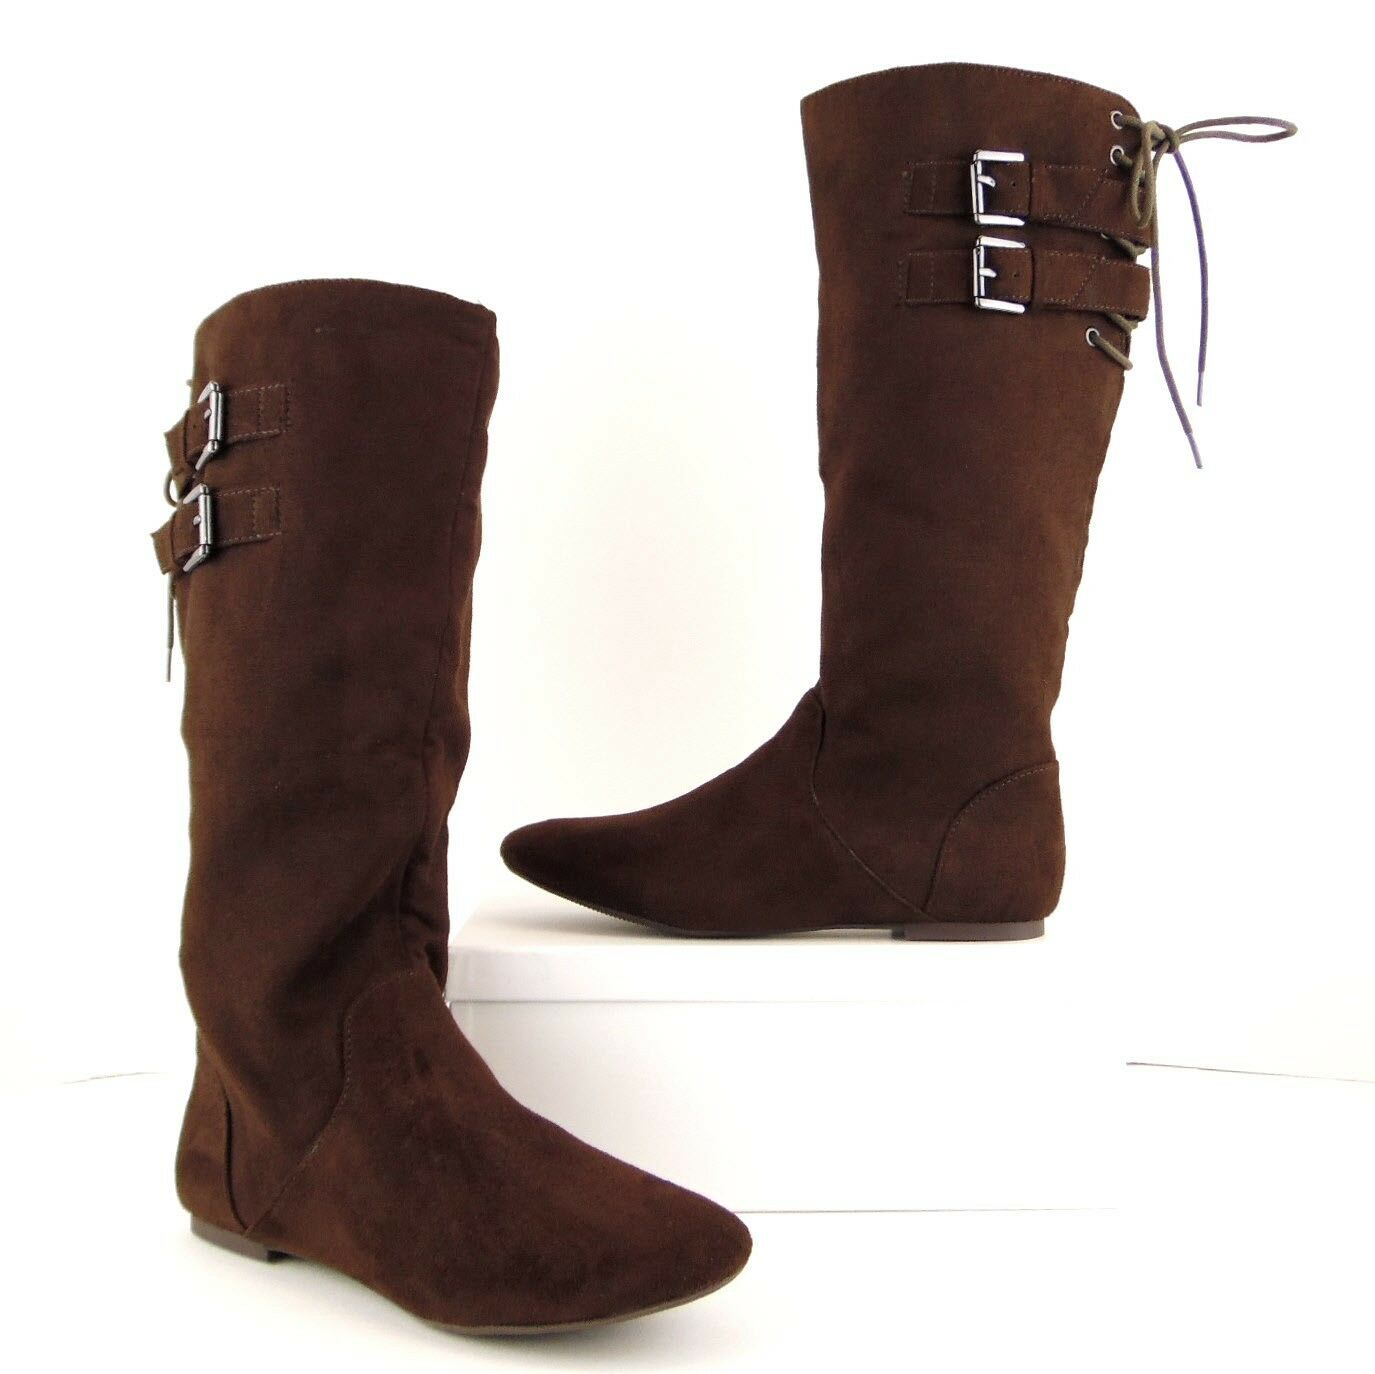 NWOB Material Girl Brown Faux Suede Knee High Flat Tall Riding Boots 6.5M (S539)